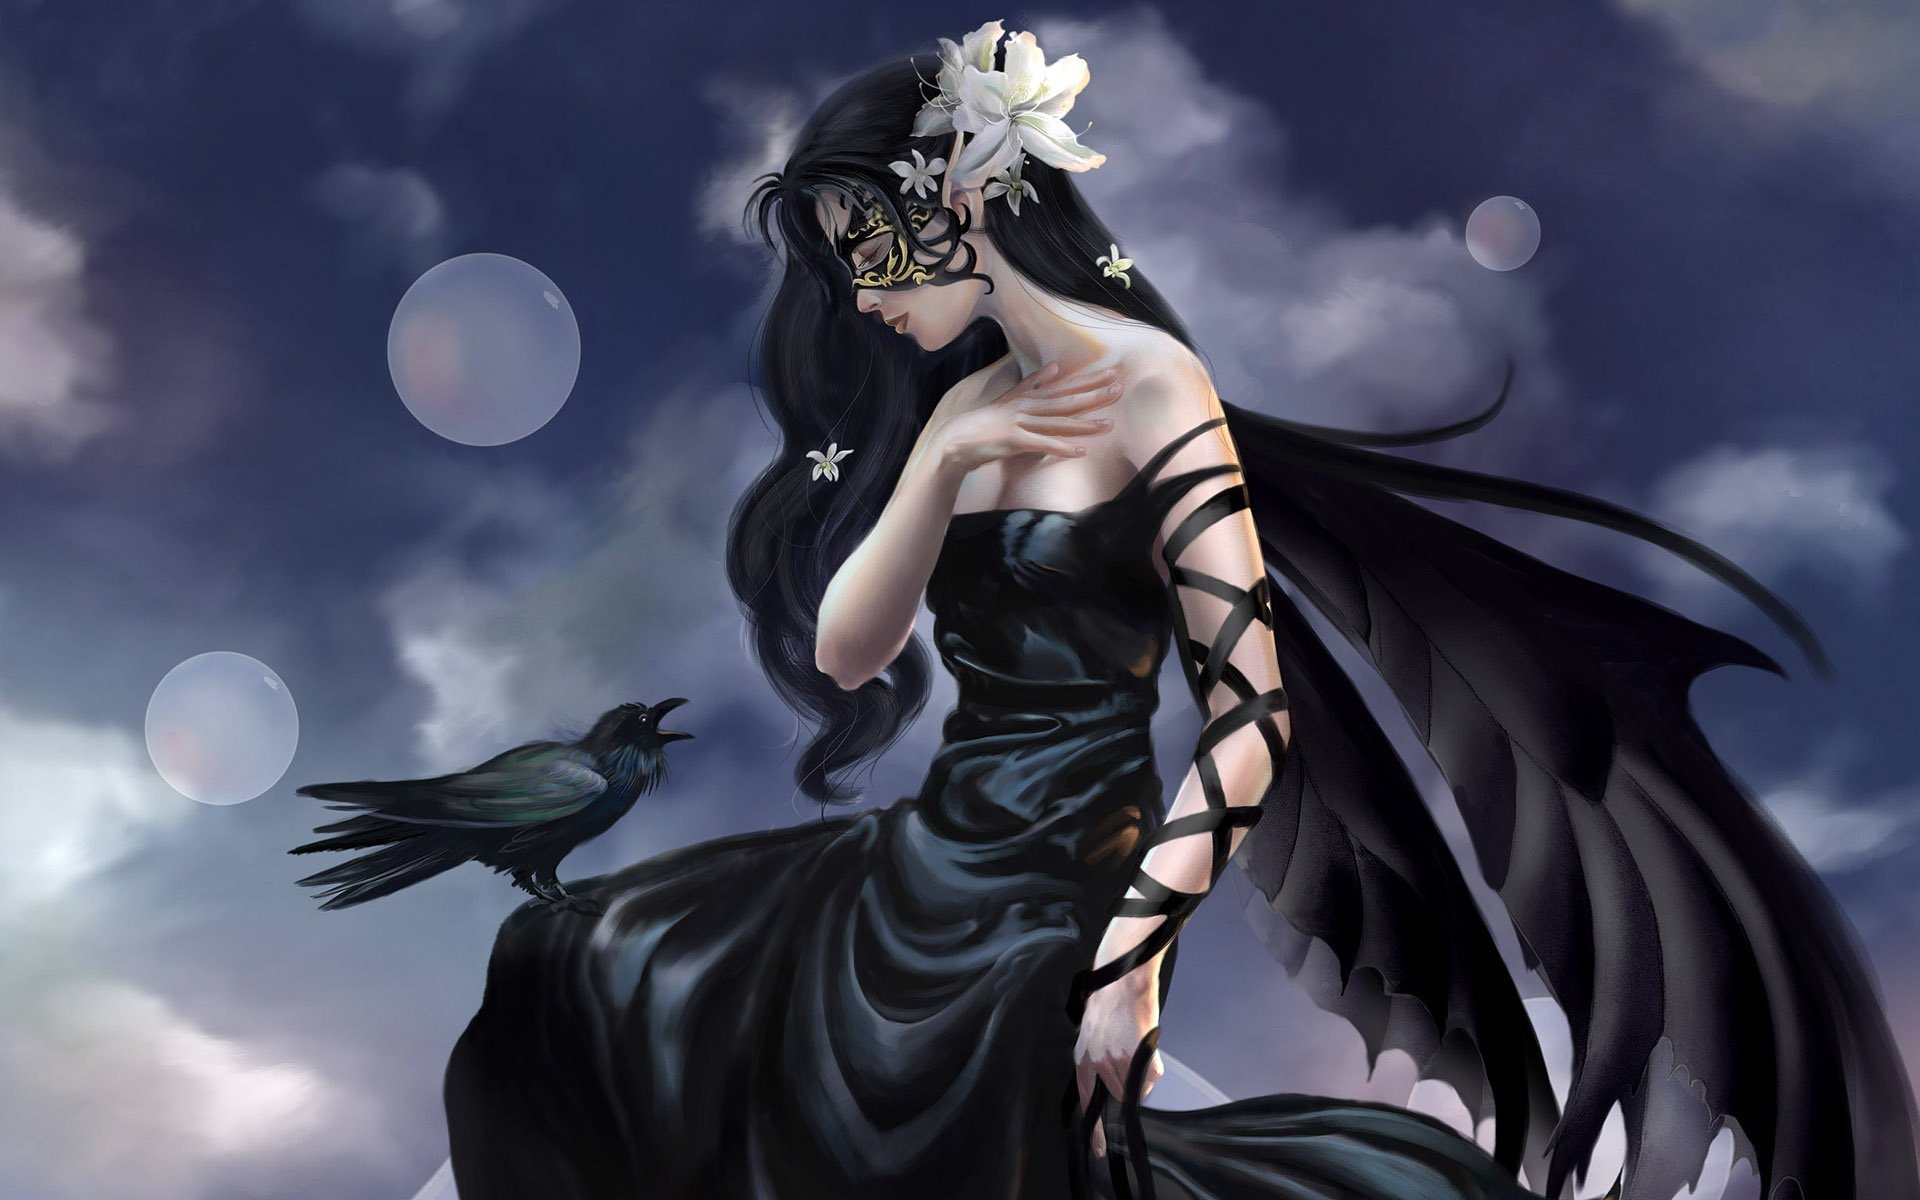 1920x1200 Fantasy girl   Raven desktop PC and Mac wallpaper 1920x1200